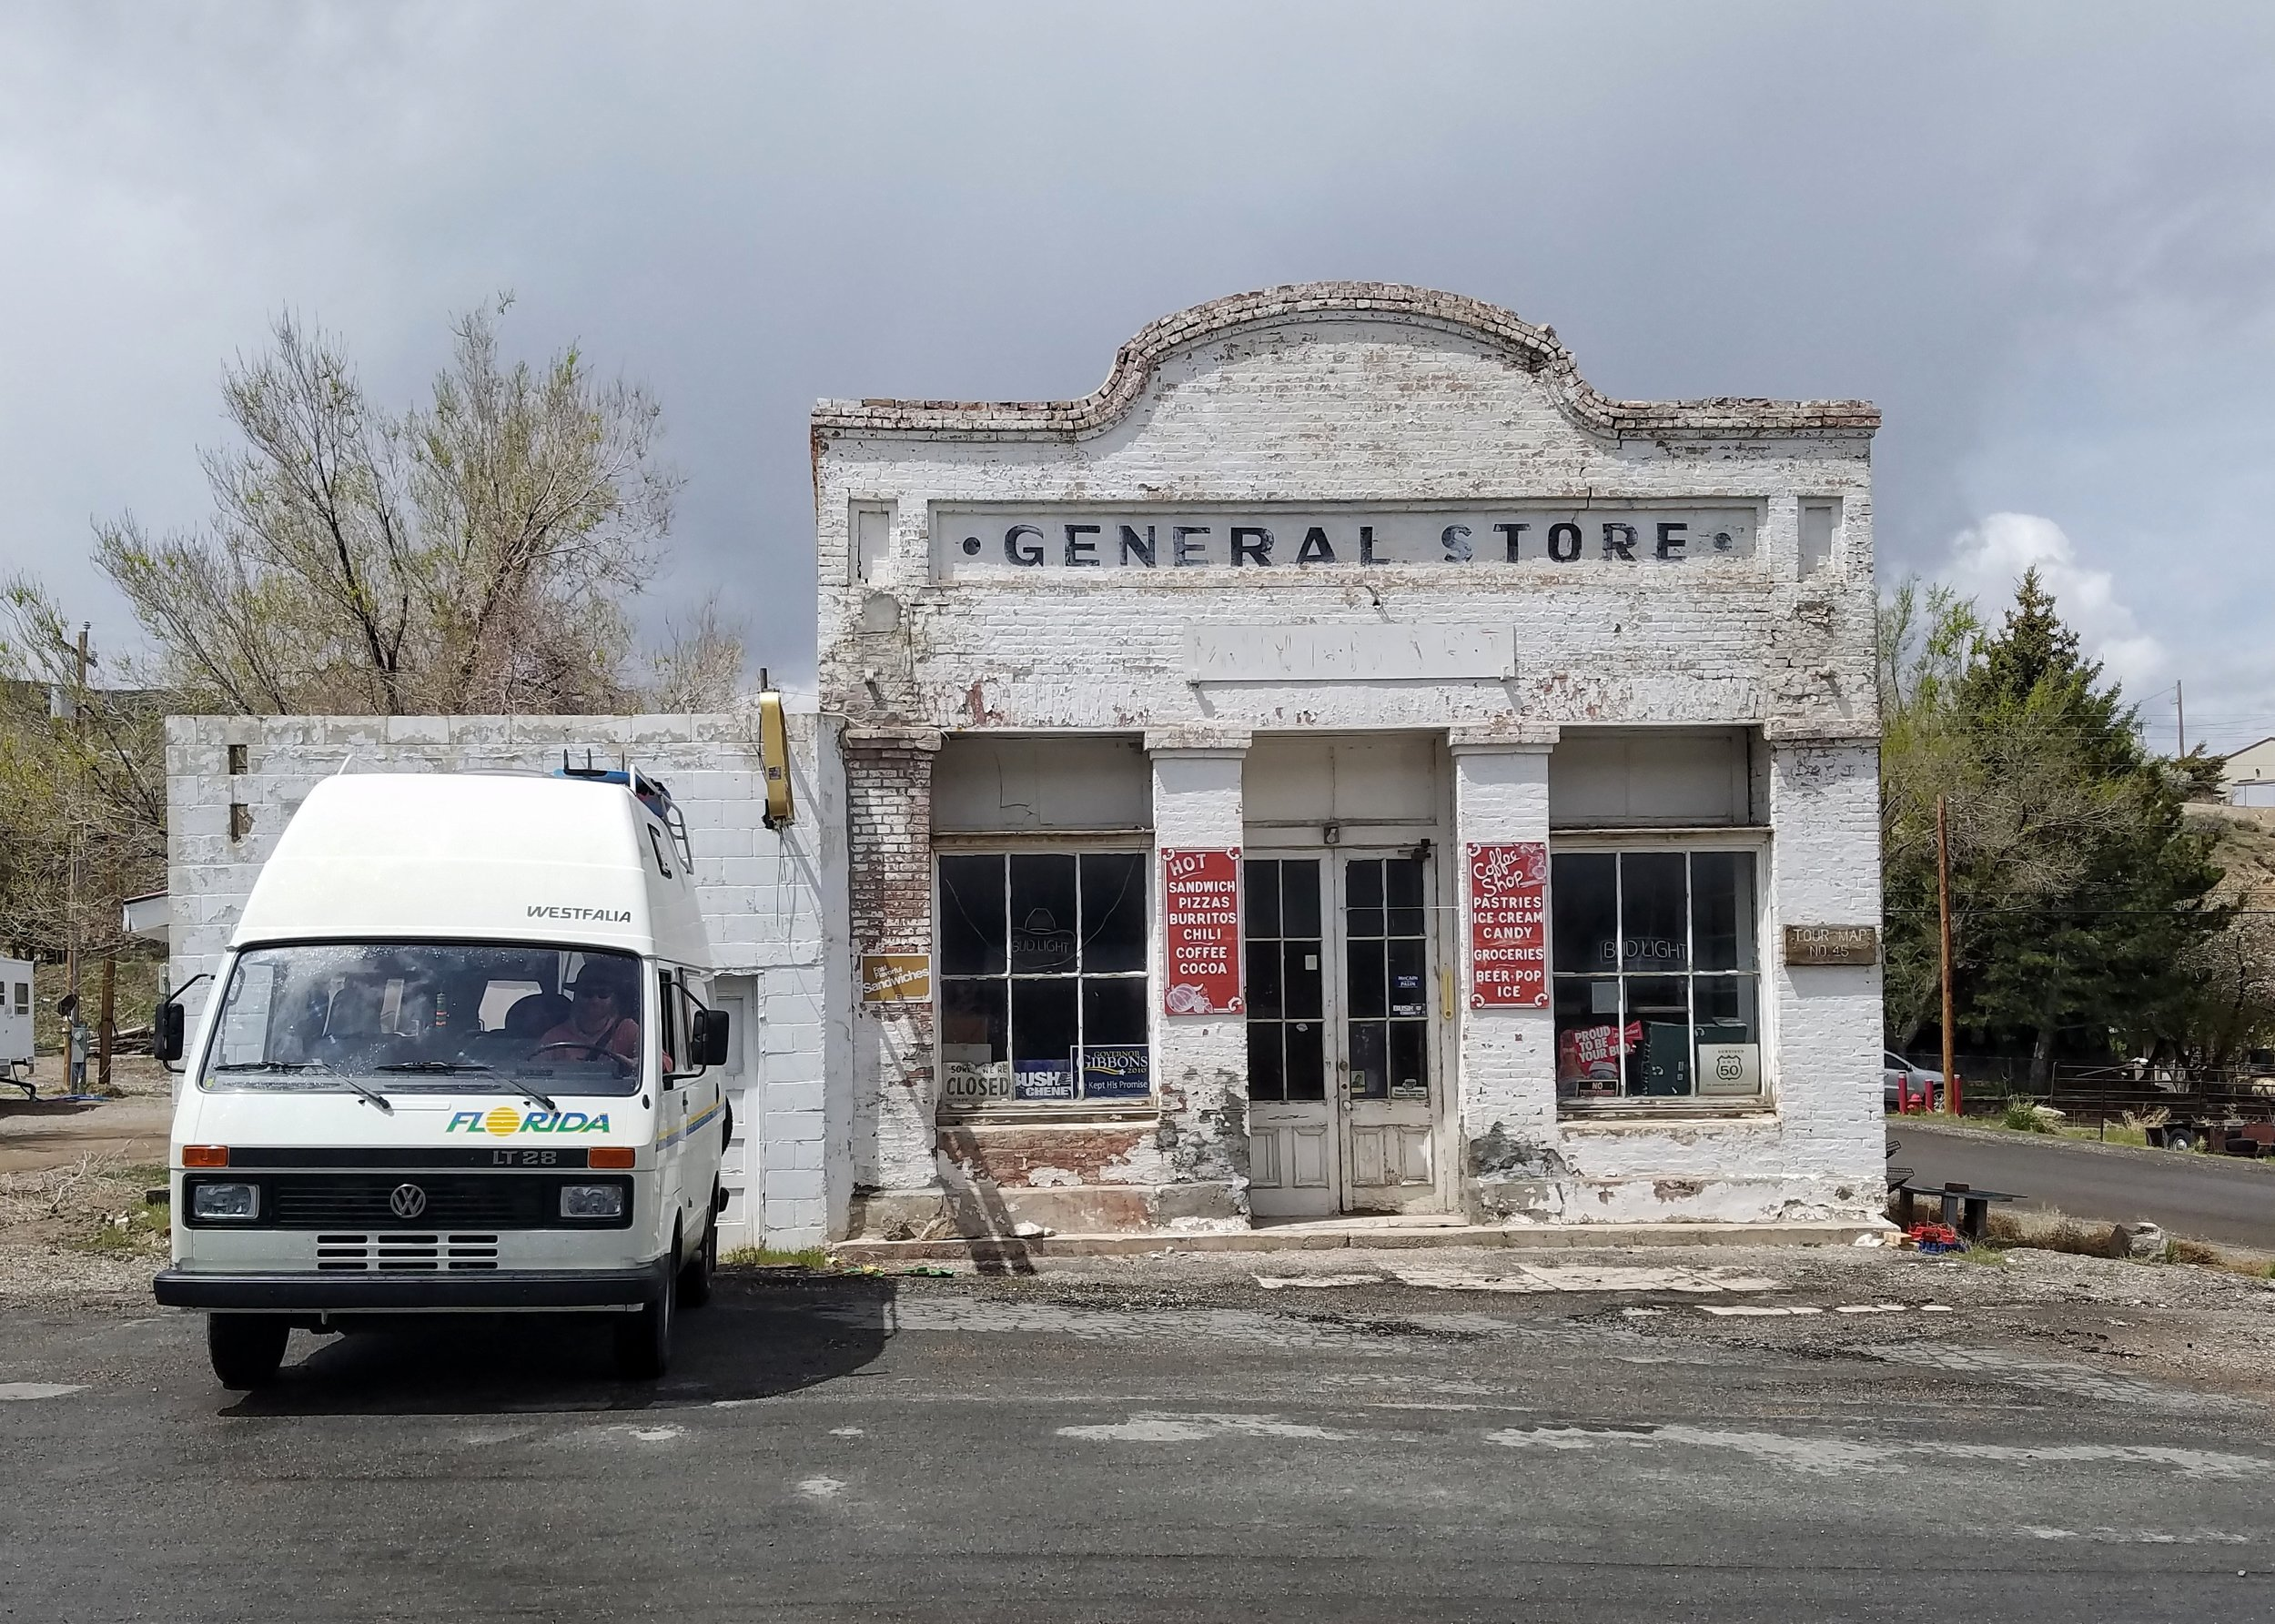 Loaf stopping in front of an old General Store